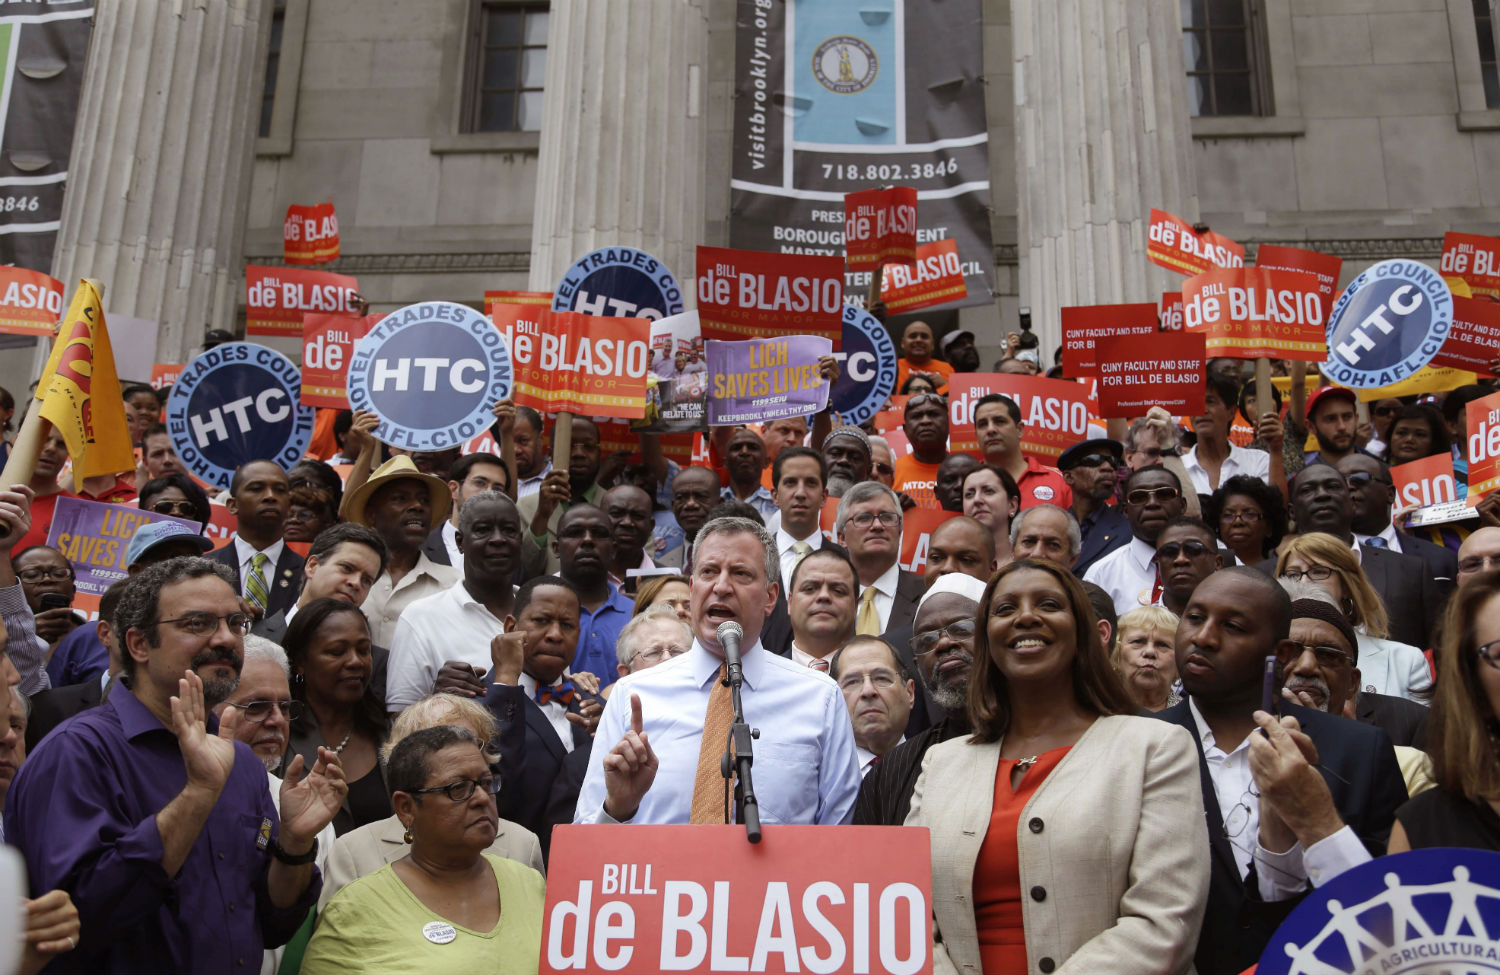 Mayor-Bill-de-Blasio-center-spoke-at-a-union-rally-in-Brooklyn-during-his-campaign.-AP-PhotoSeth-Wenig